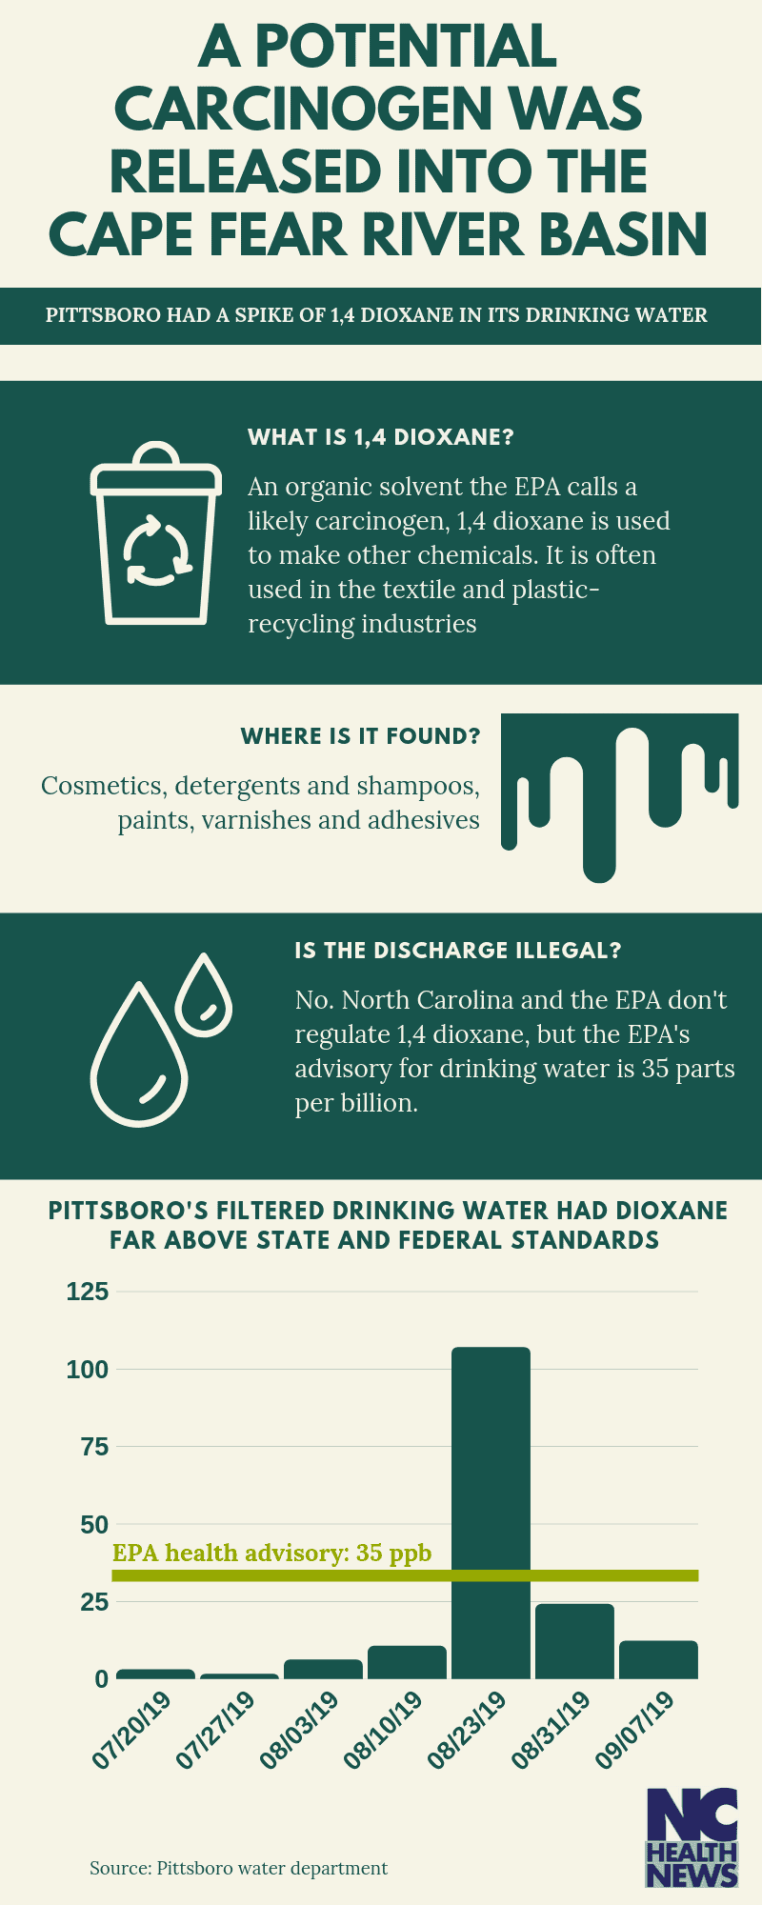 An infographic with a graph that shows Pittsboro's 1,4 dioxane levels were elevated far beyond the EPA advisory level of 35 parts per billion.